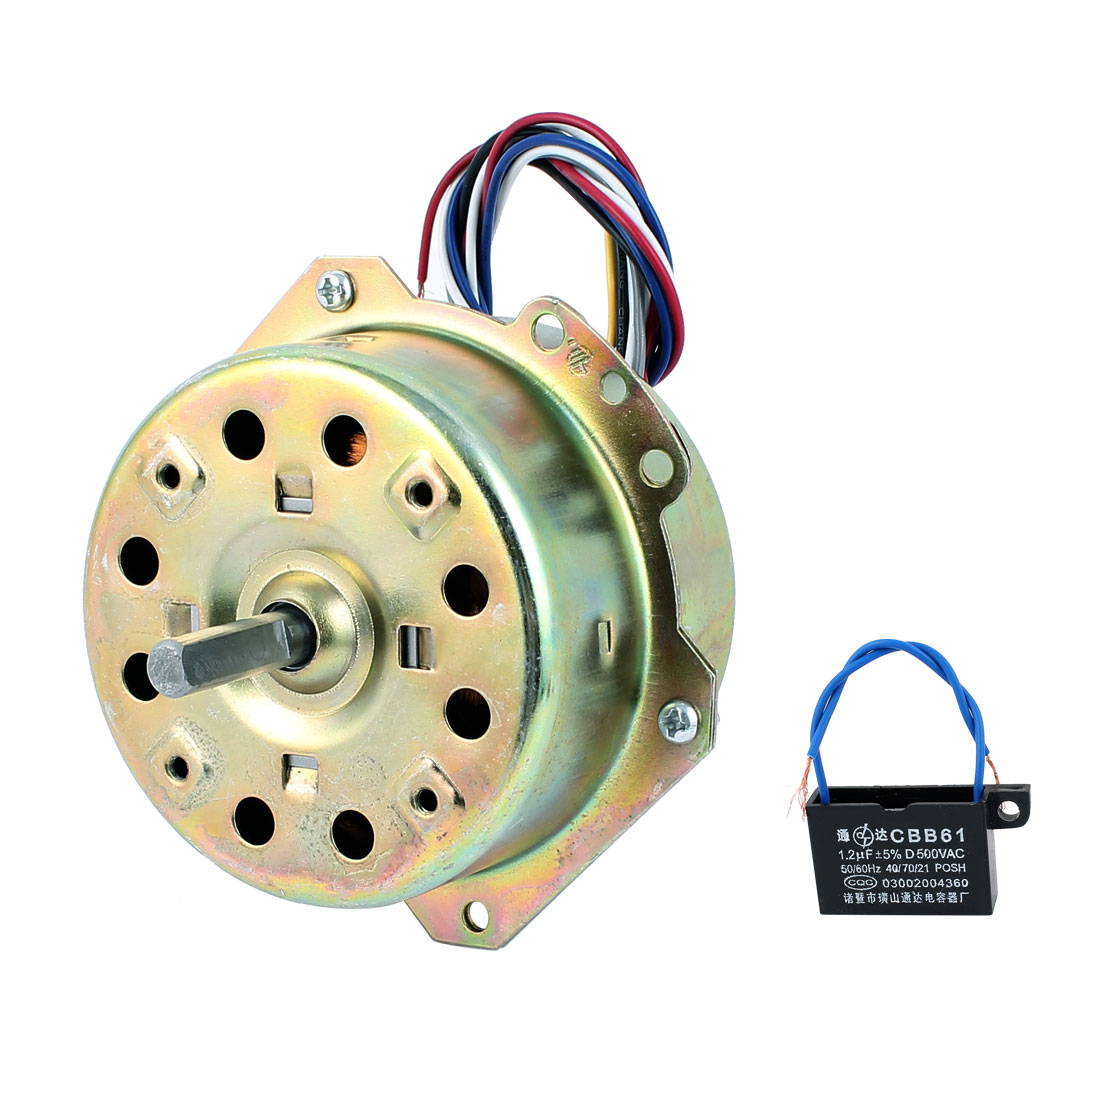 AC 220V 0.34A 1000RPM 8mmx27mm Shaft Dual Bearing Ball Electric Ventilator Fan Motor